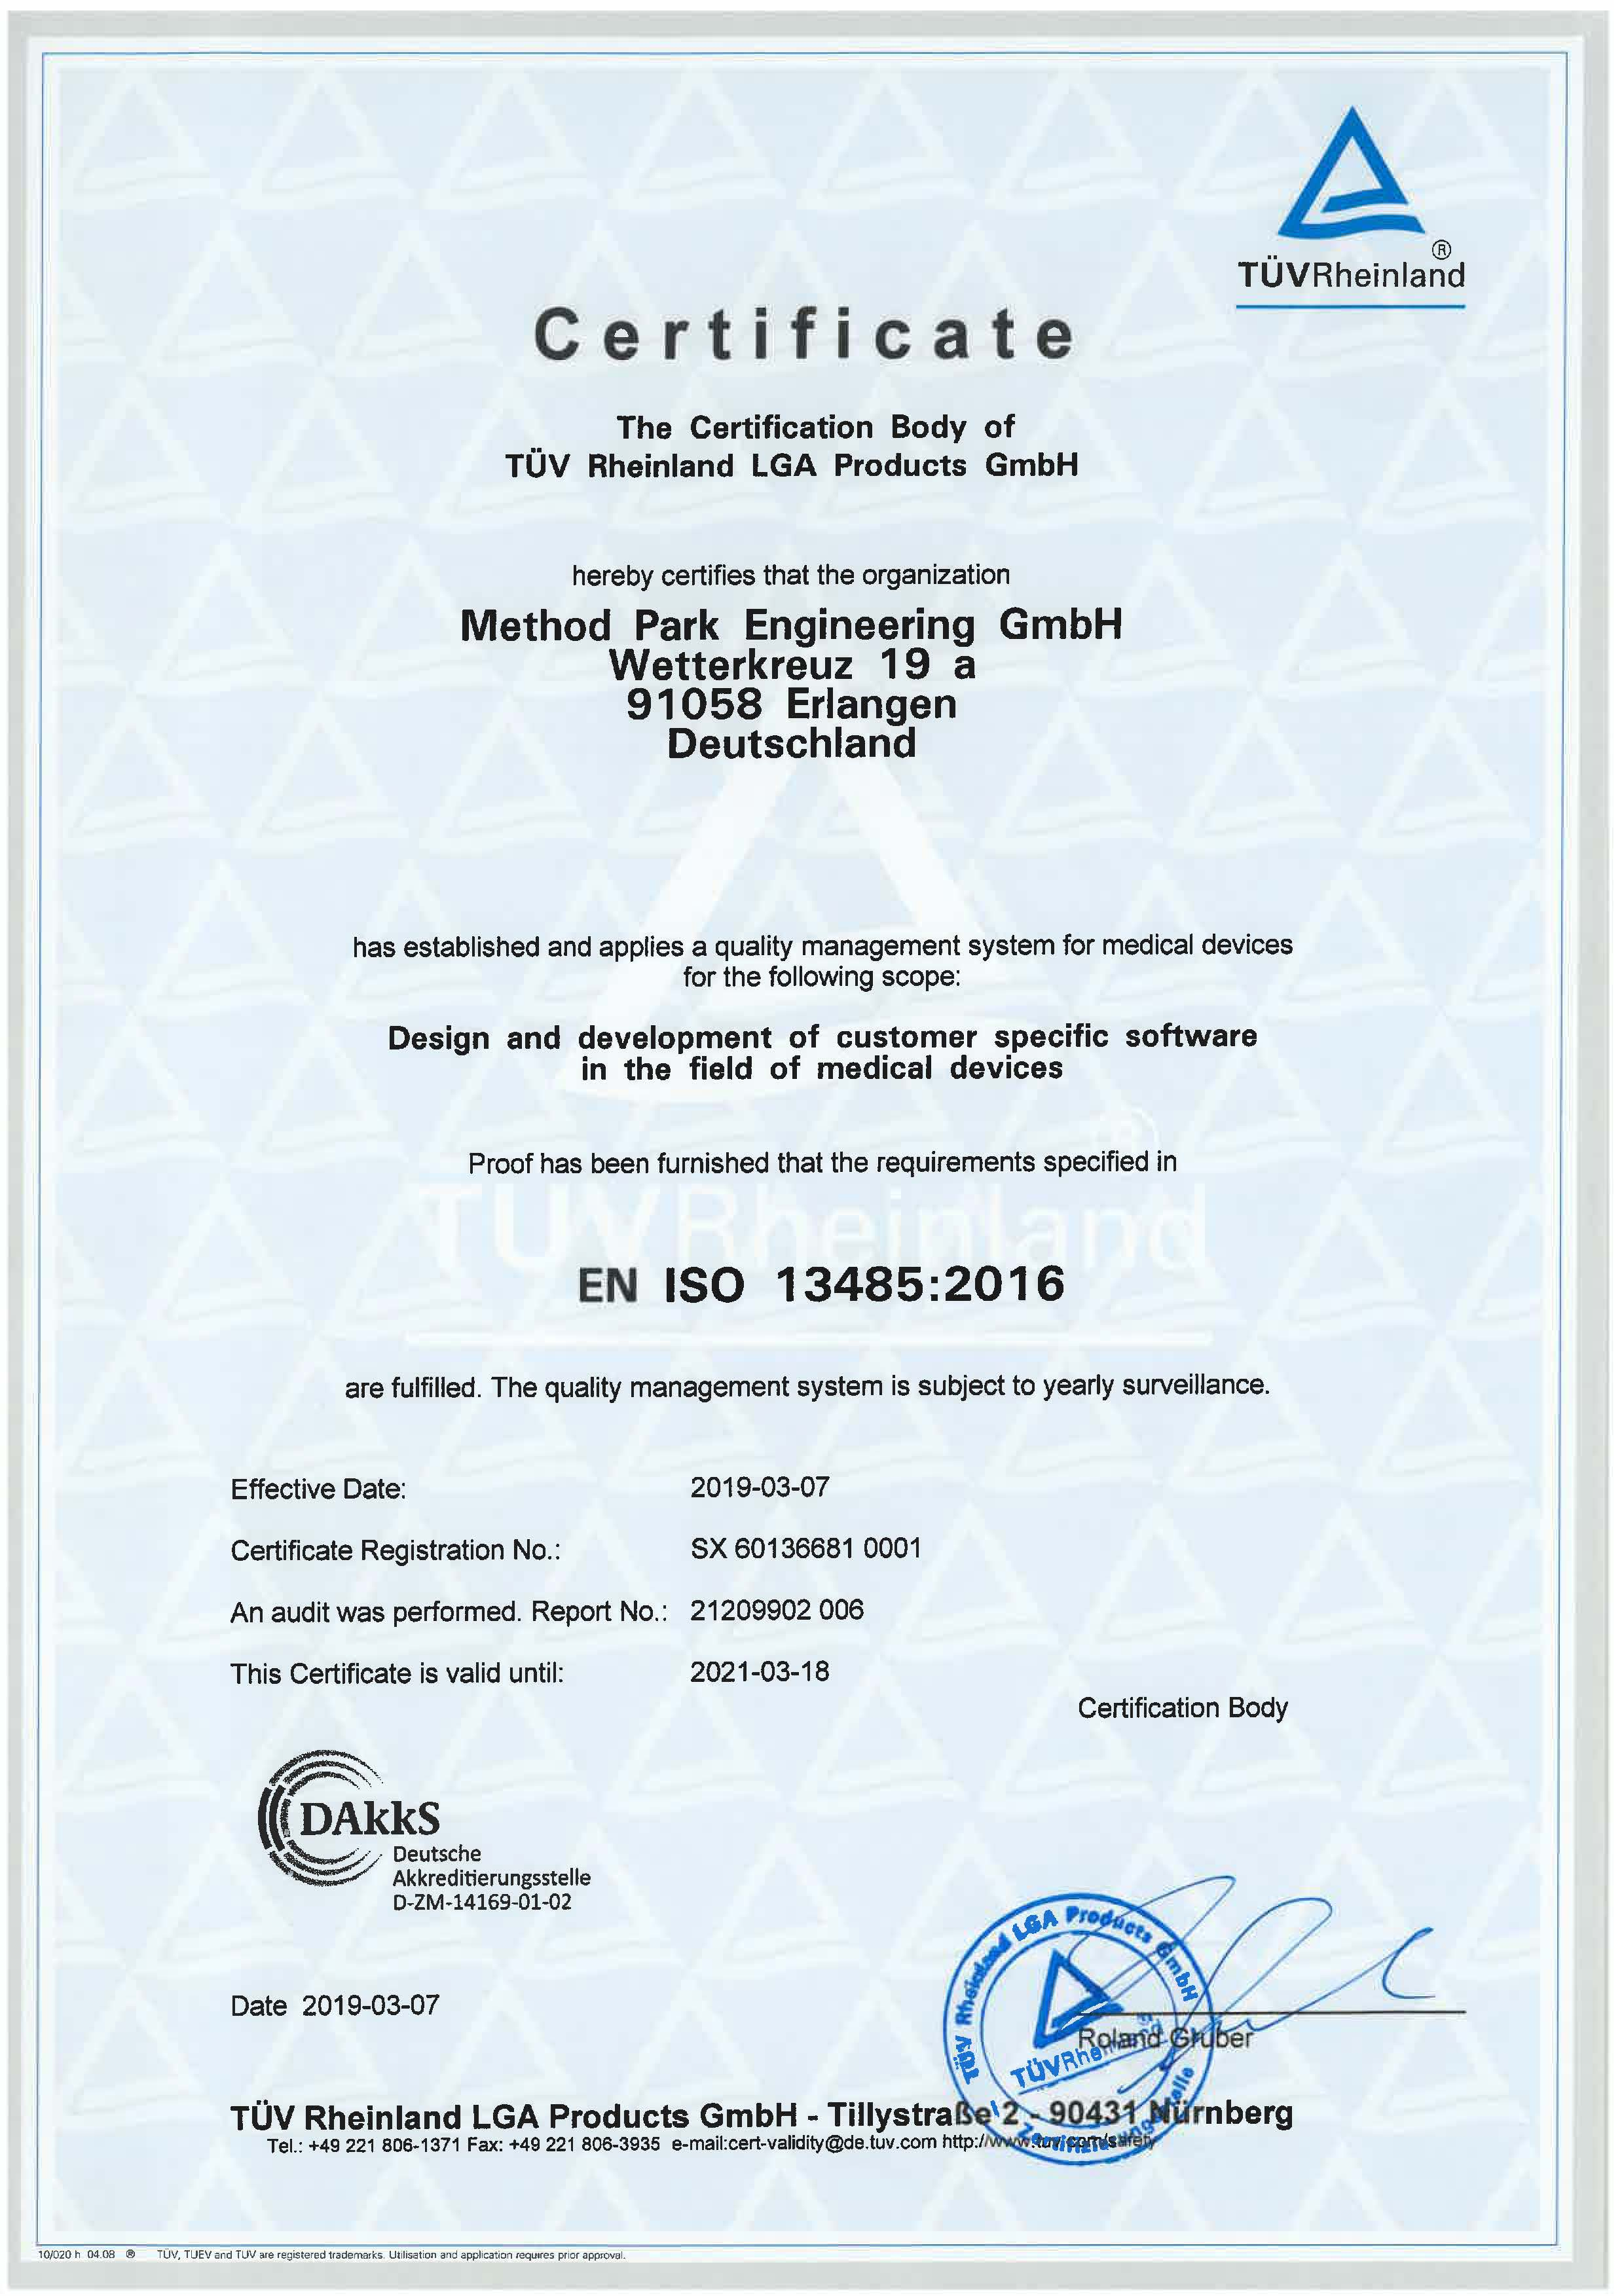 ISO 13485:2012